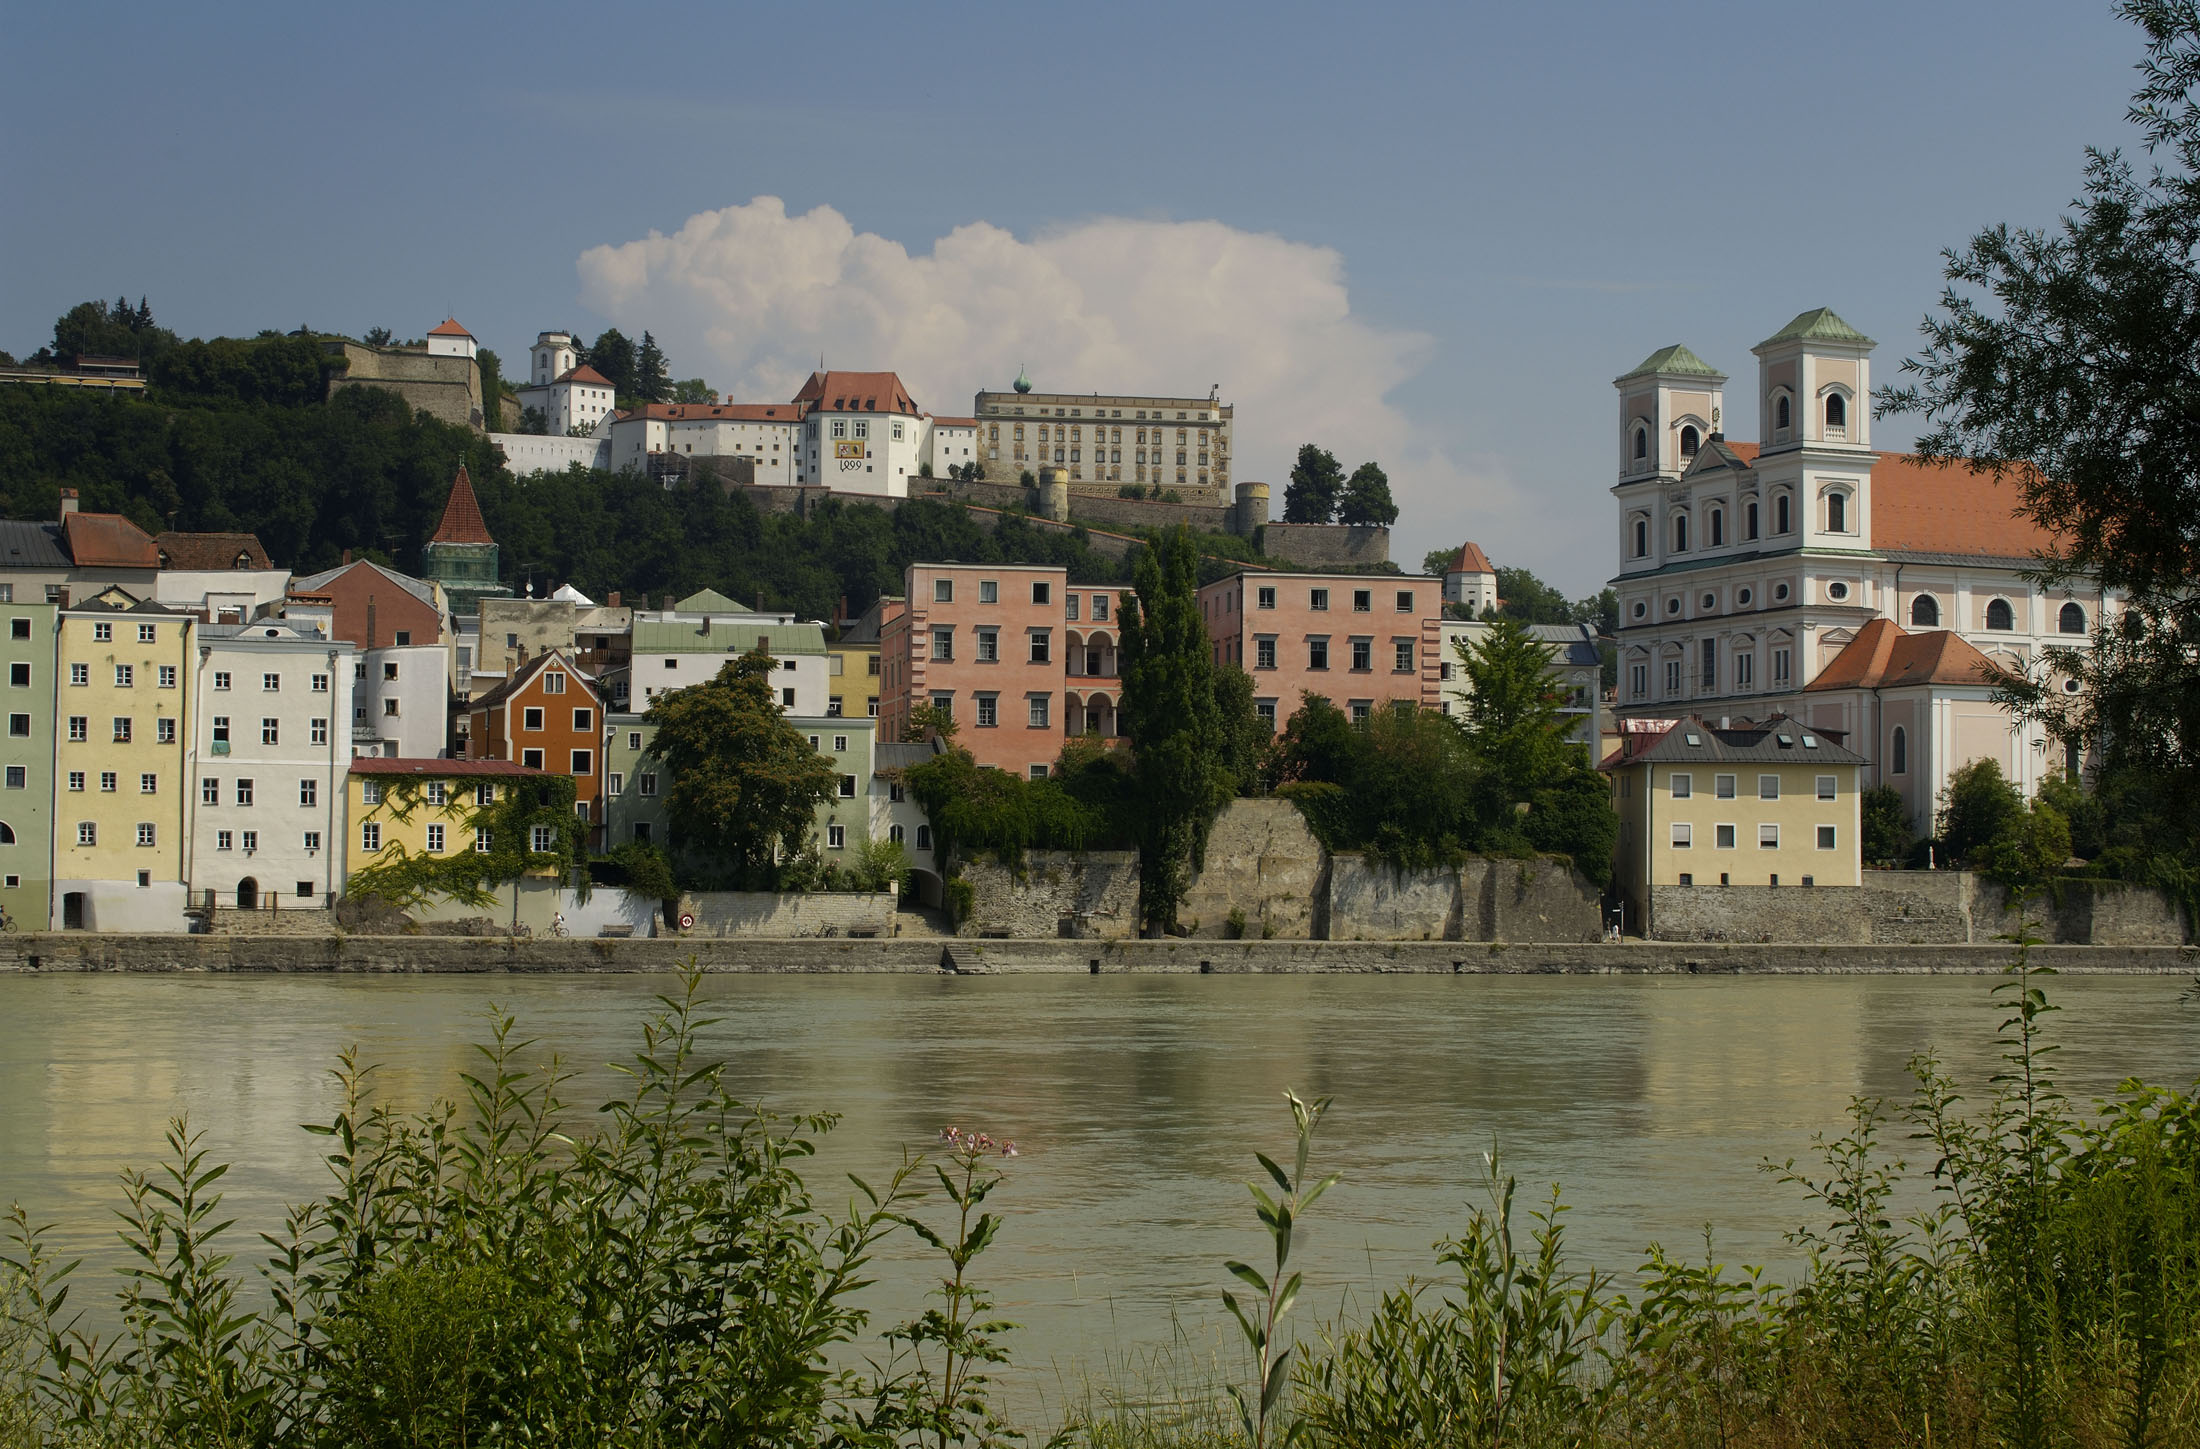 Passau's location is unique worldwide. The city was built on the confluence of three rivers; the Danube, the Inn and the Ilz.